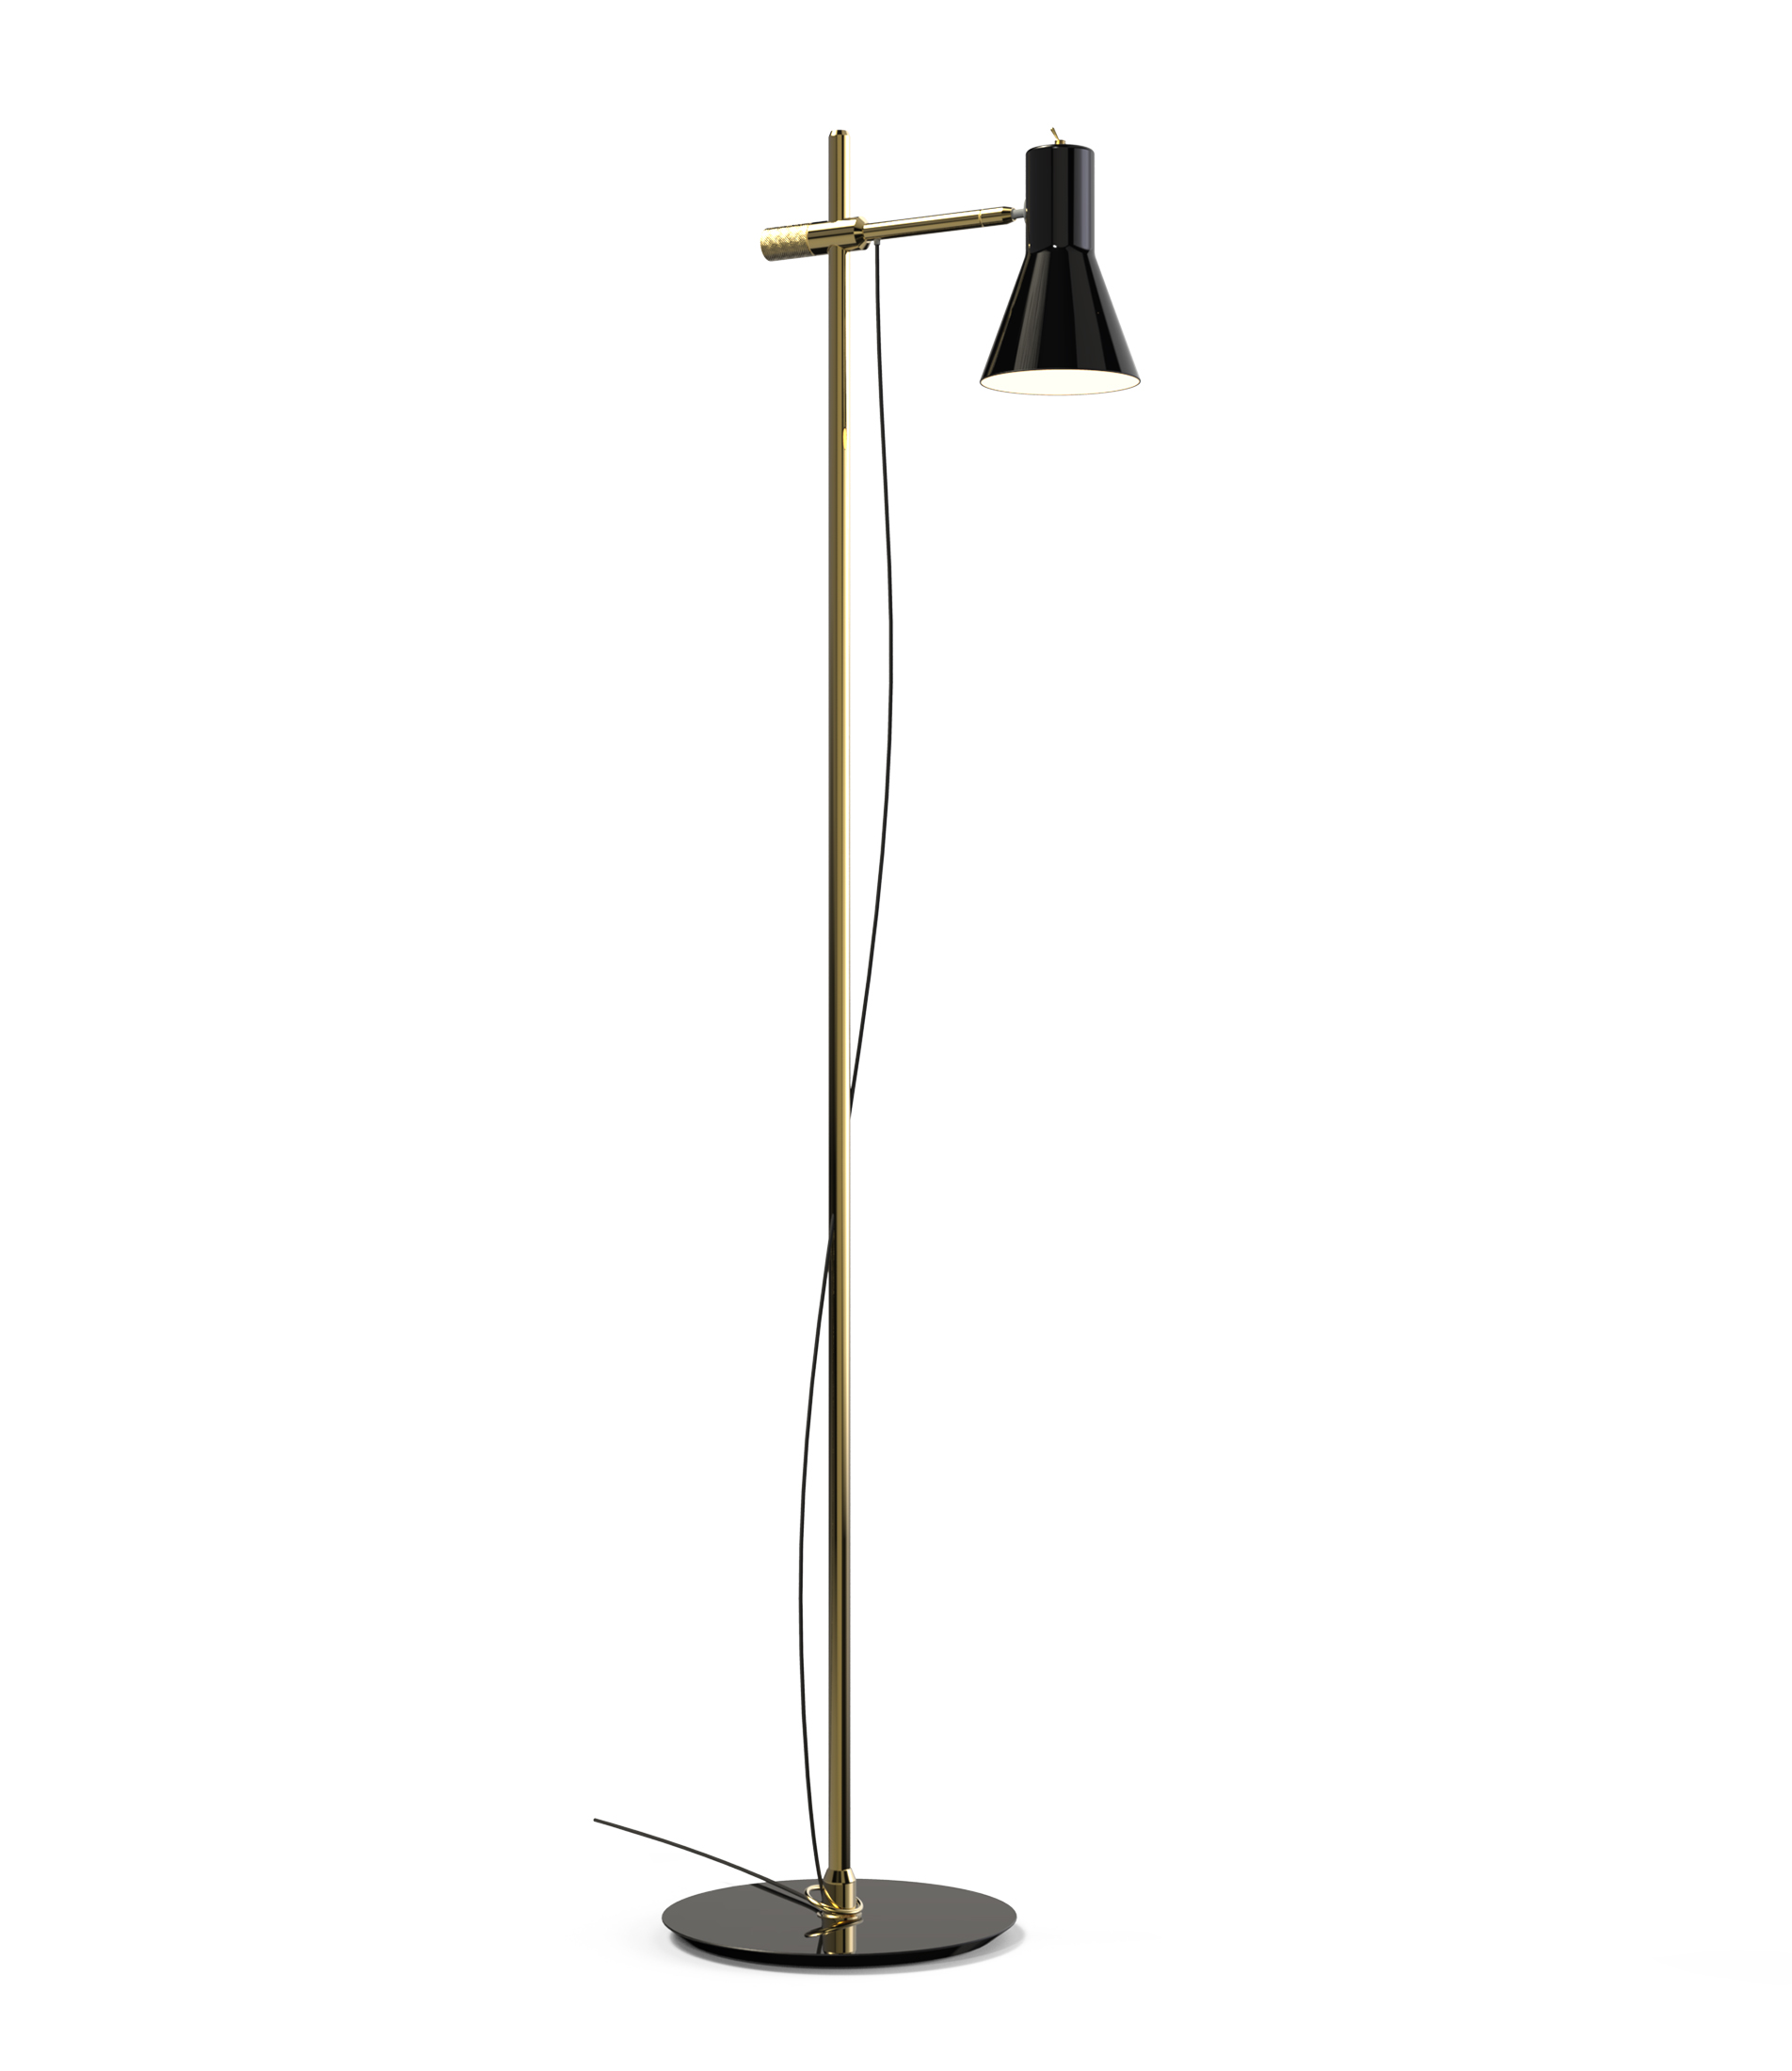 Coleman floor lamp Coleman Floor Lamp A Tribute Piece To This Legend Coleman Floor Lamp A Tribute Piece To This Legend 3